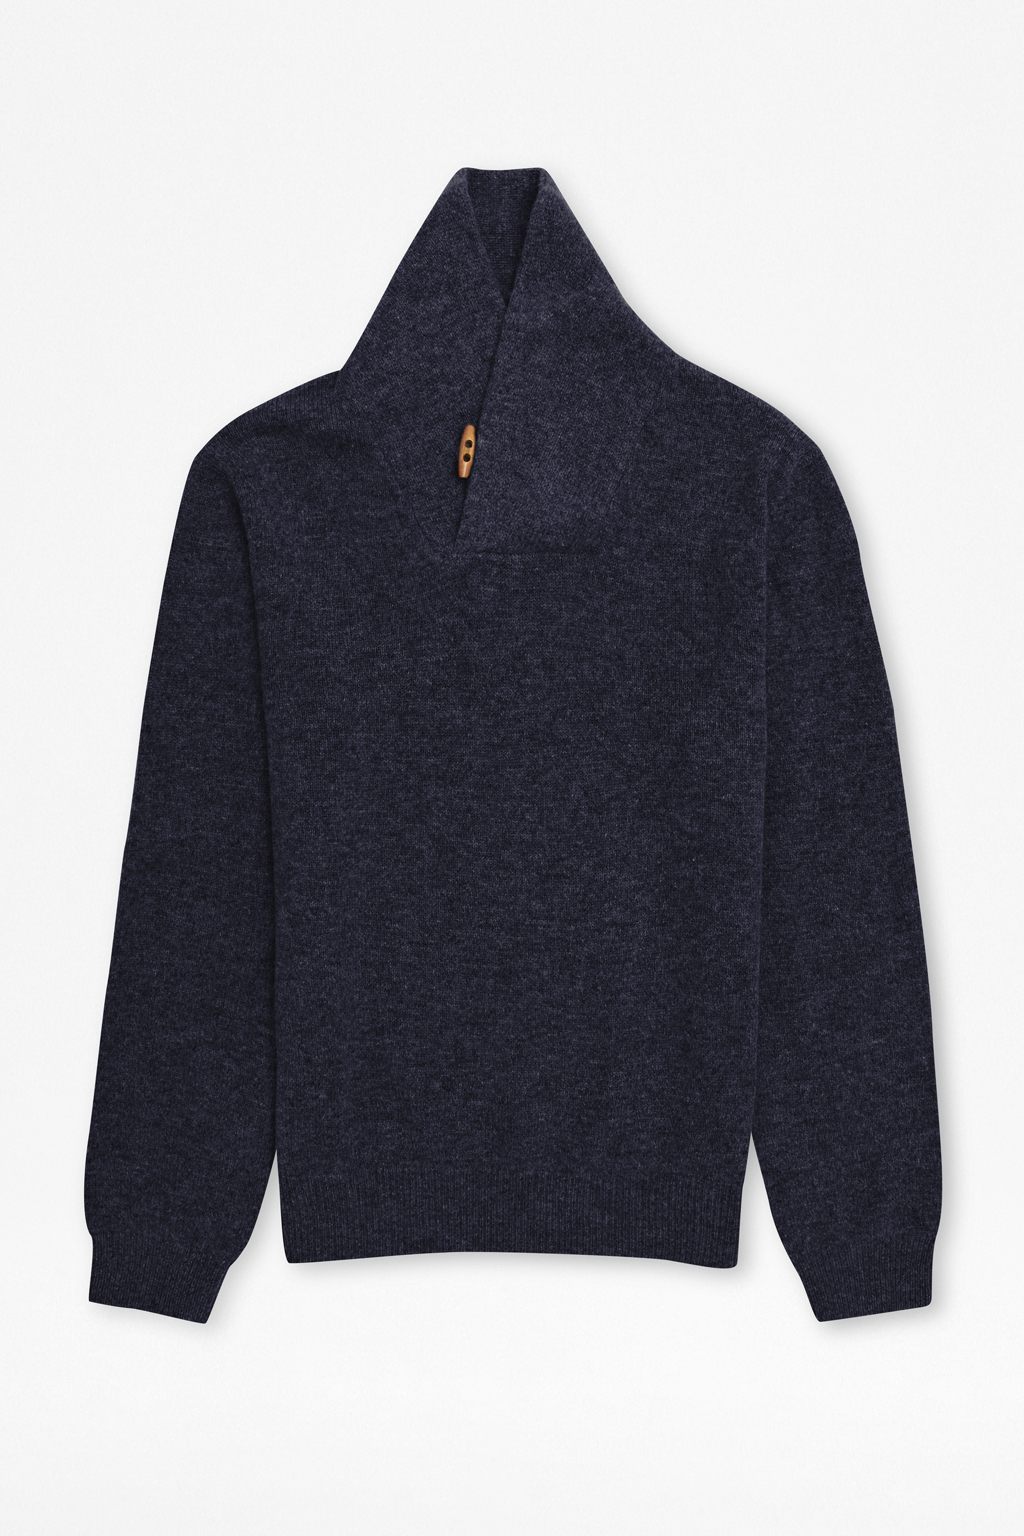 New-French-Connection-Lambswool-Cardigan